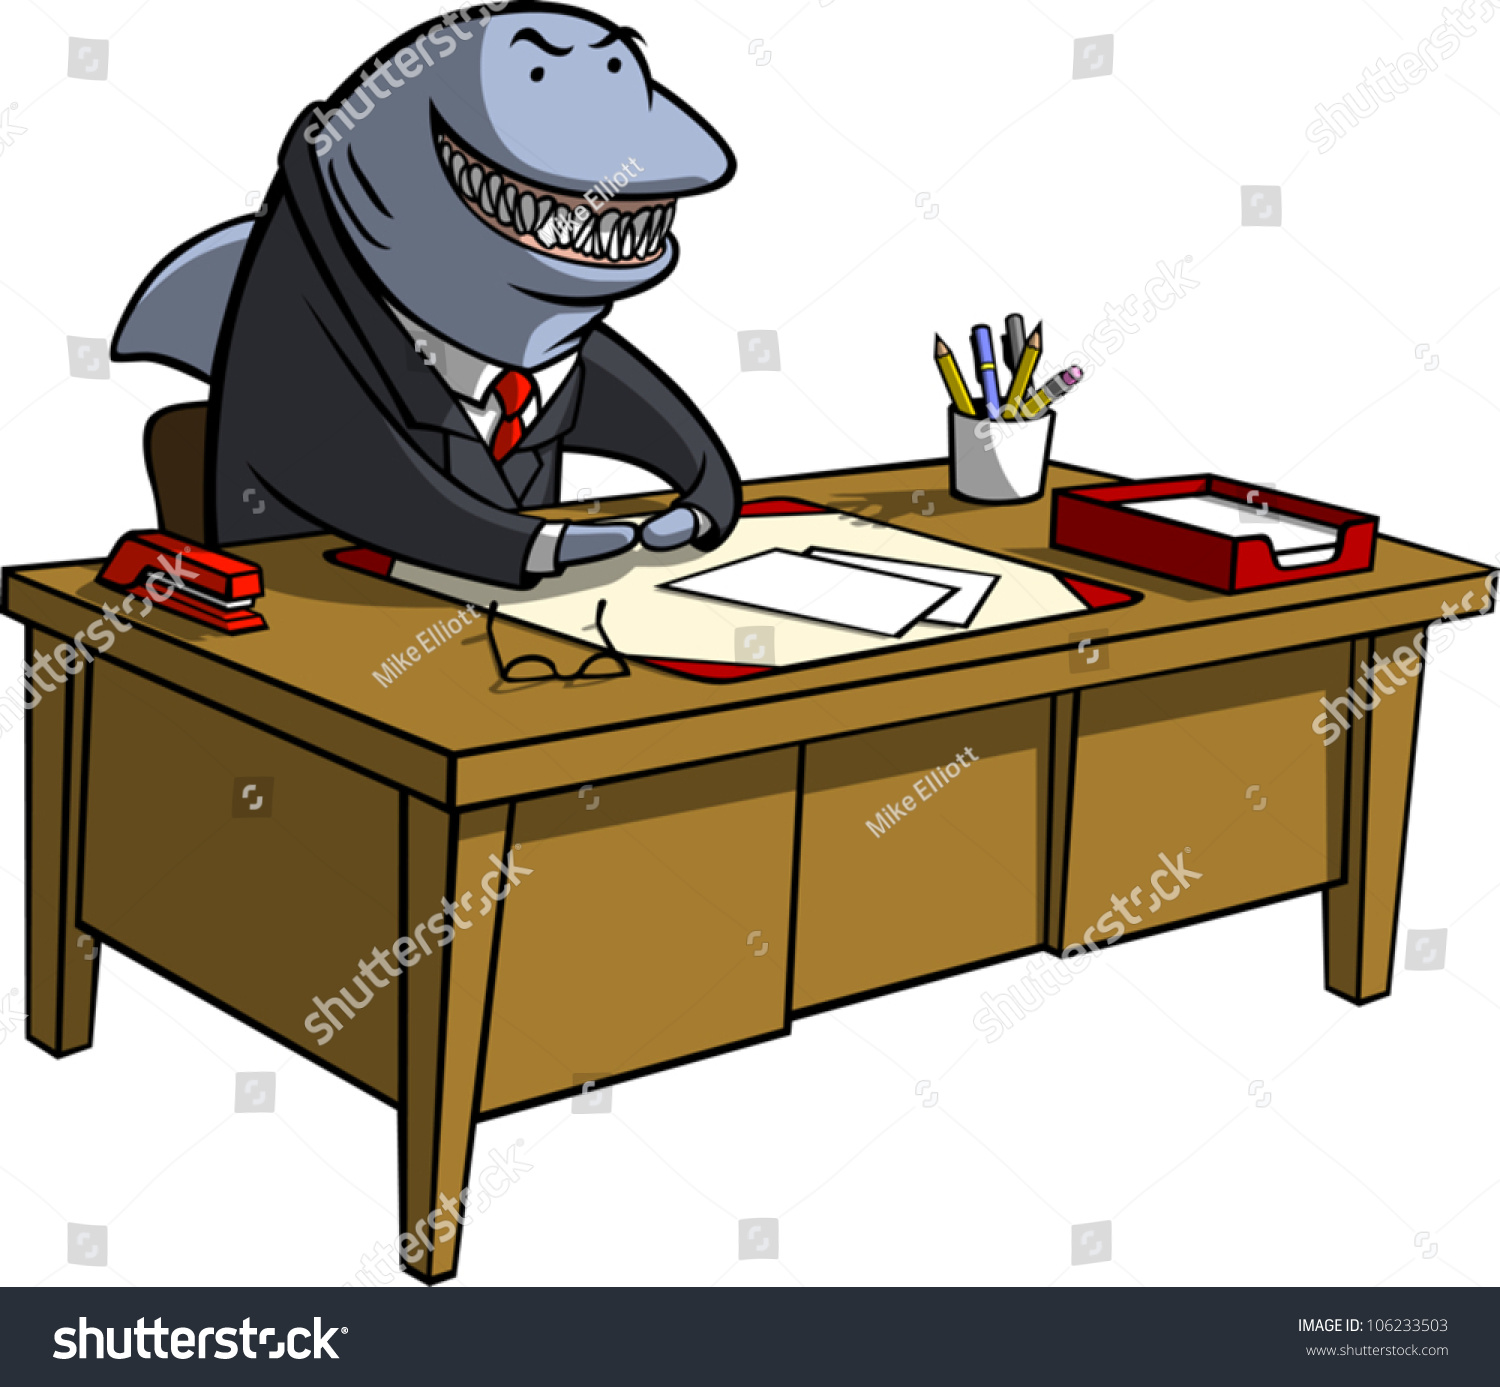 loan shark Private loan shark : mortgage prequalification #[ private loan shark ]# all credit types welcome instant approvals.